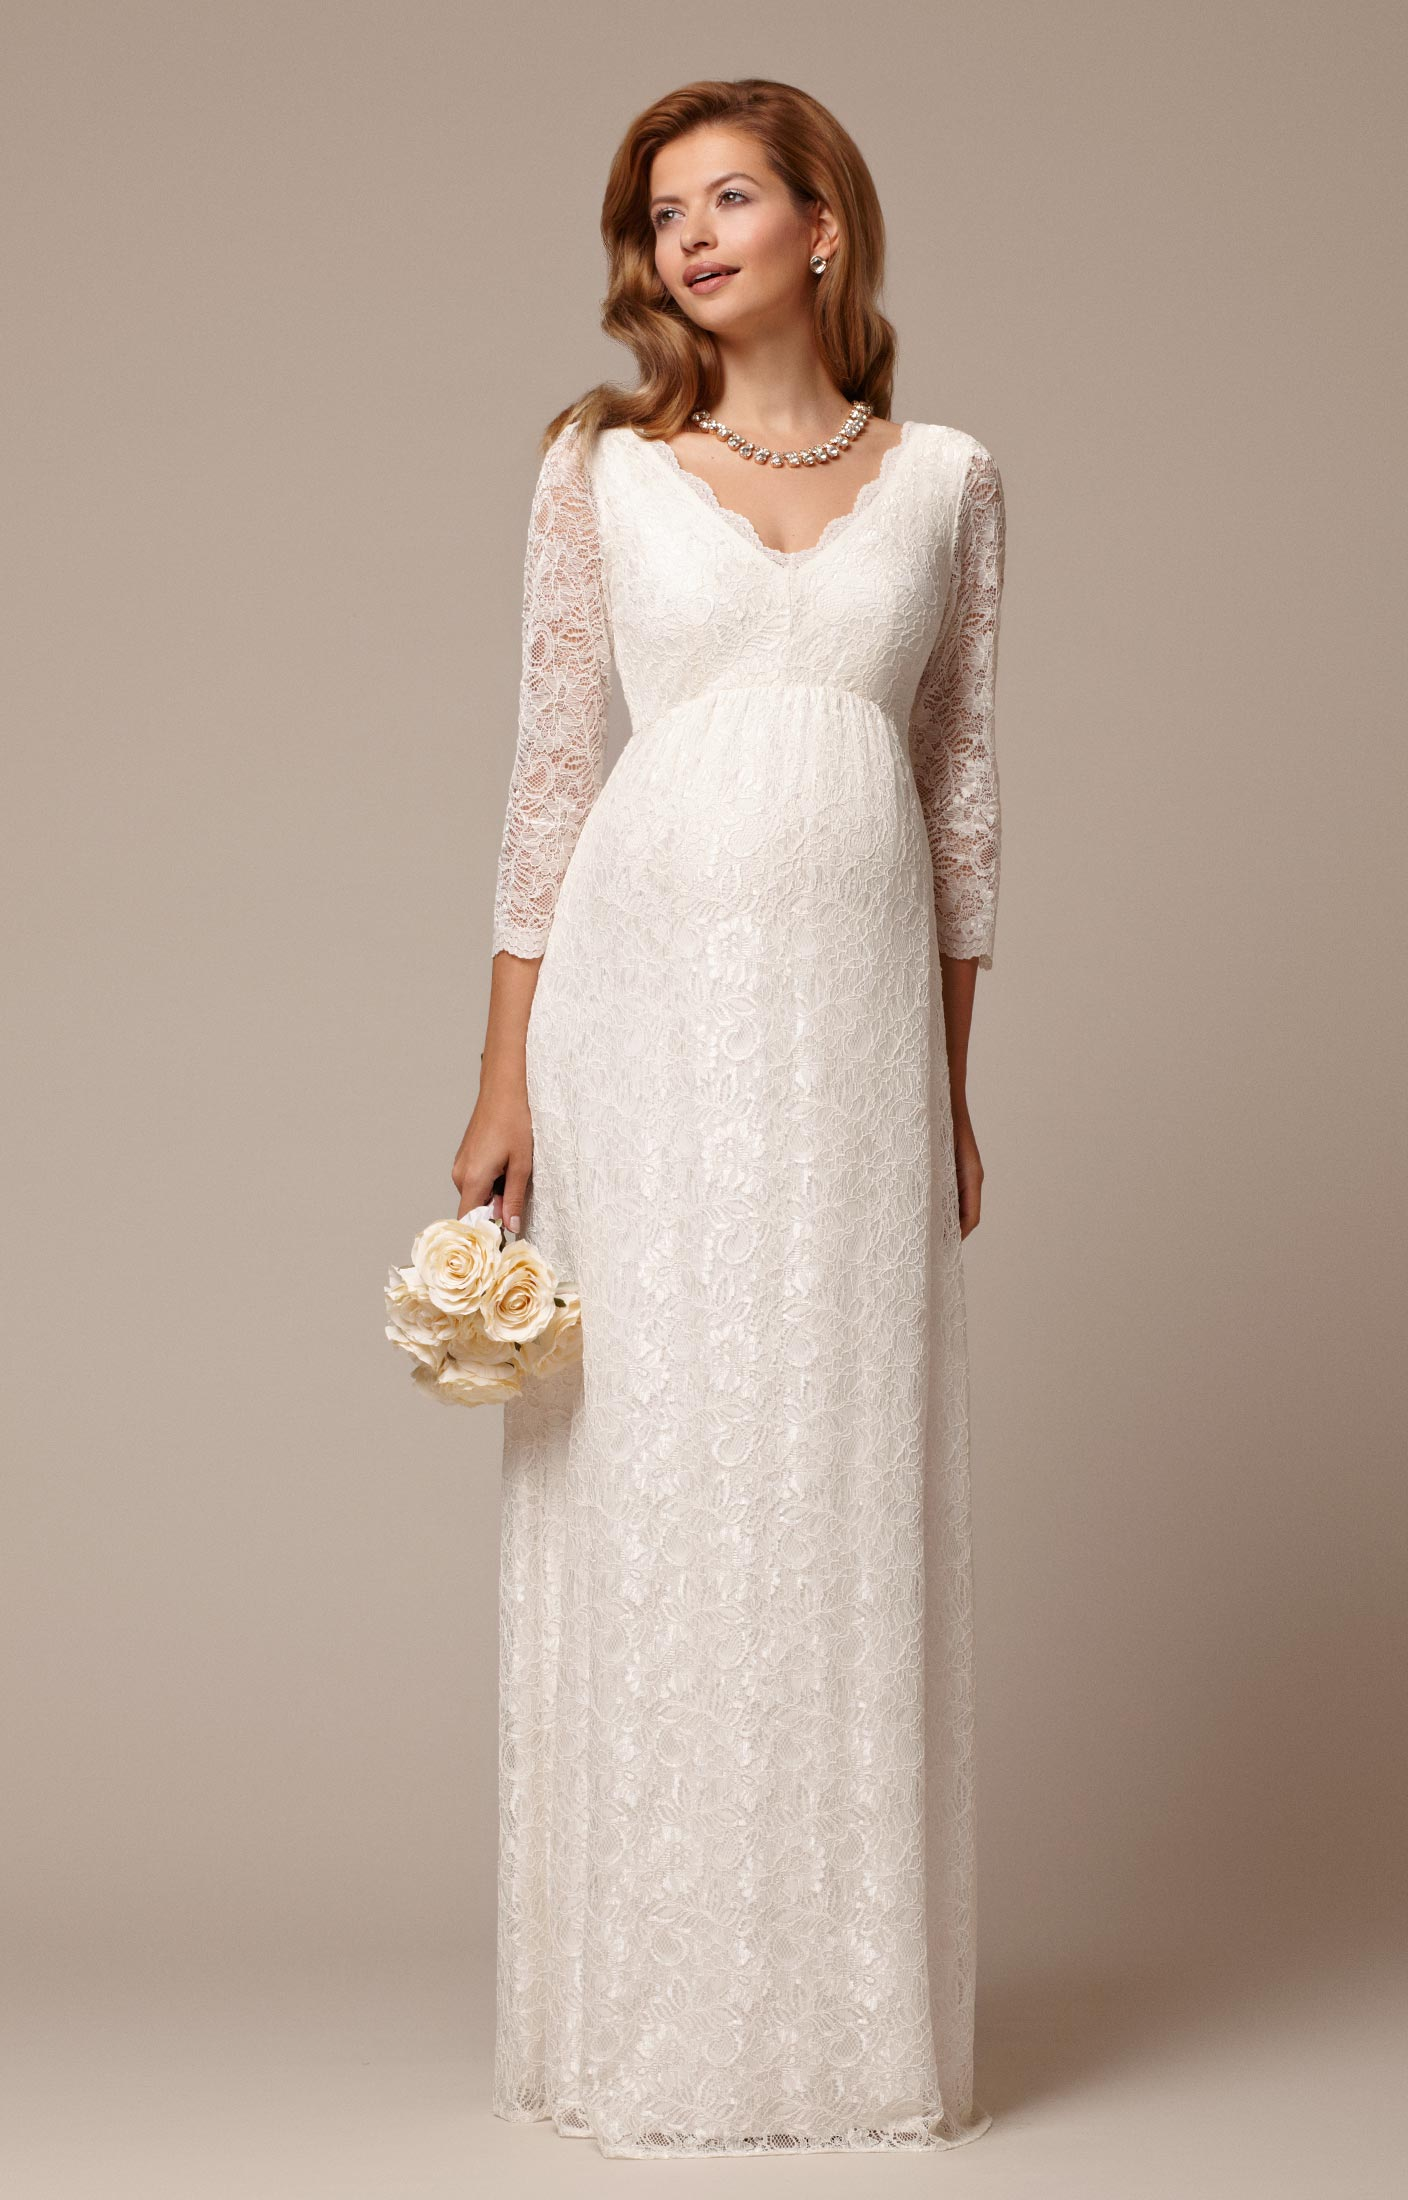 Chloe Lace Maternity Wedding Gown Ivory Maternity Wedding Dresses Evening Wear And Party Clothes By Tiffany Rose Dk